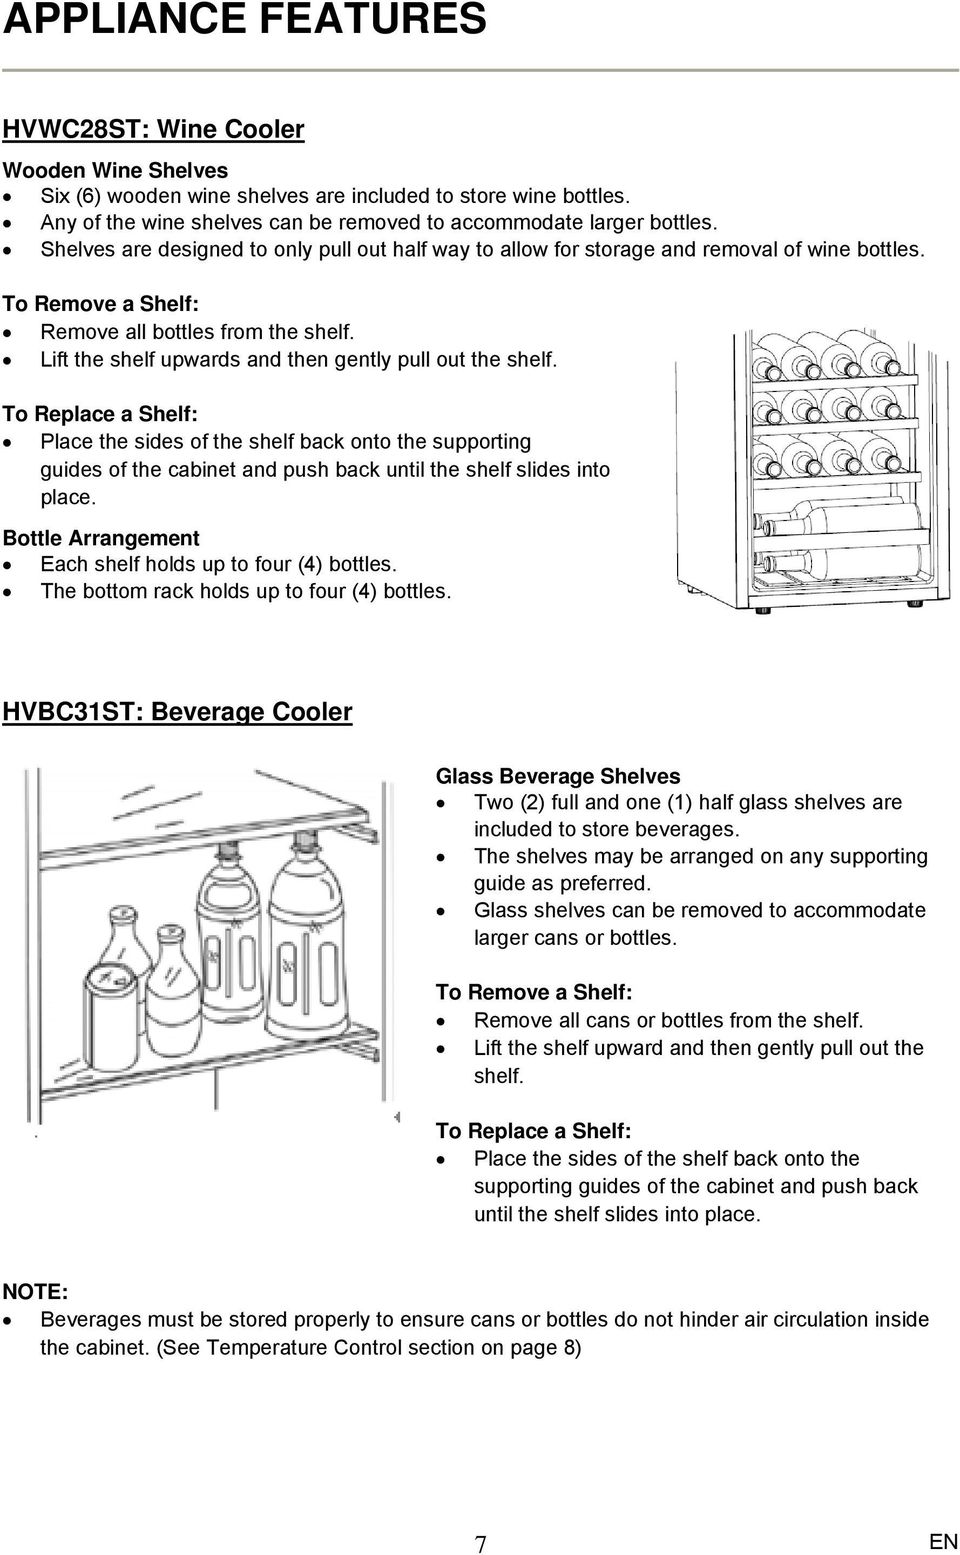 Stainless Steel Wine Beverage Cooler Instruction Manual Hvbc31st Pdf Wiring Diagram Lift The Shelf Upwards And Then Gently Pull Out